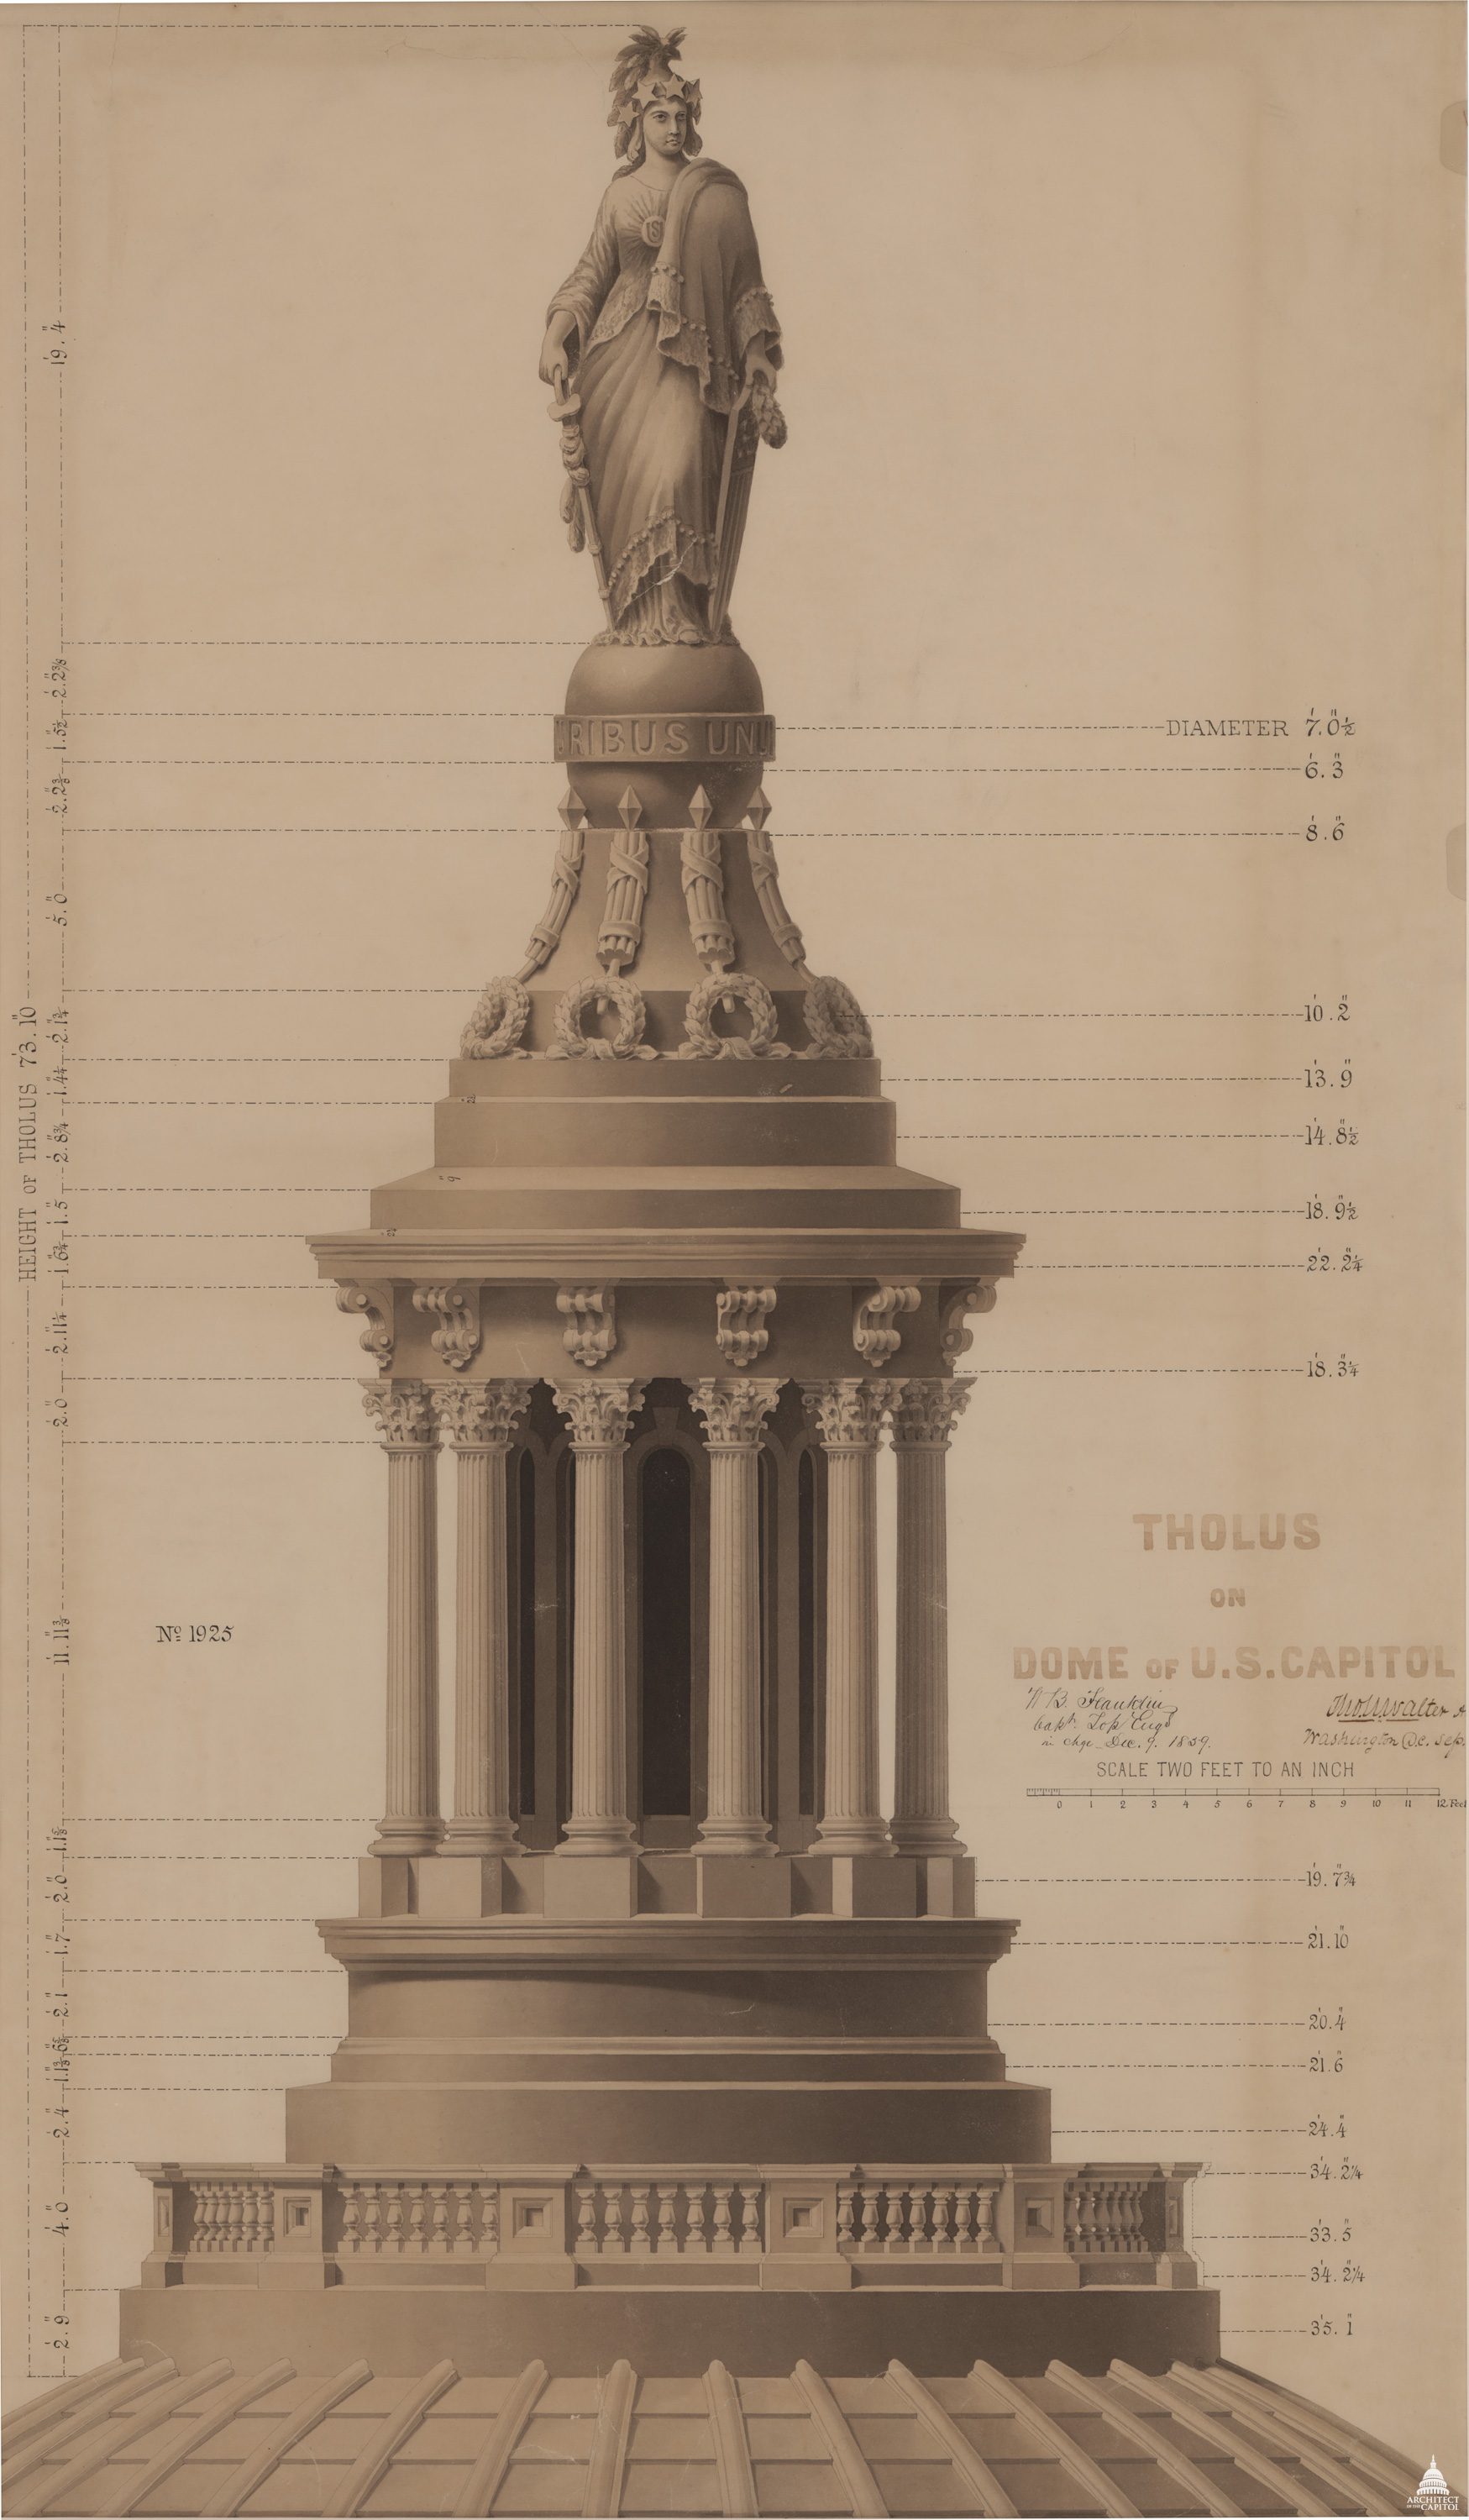 A detailed diagram of the Statue of Freedom